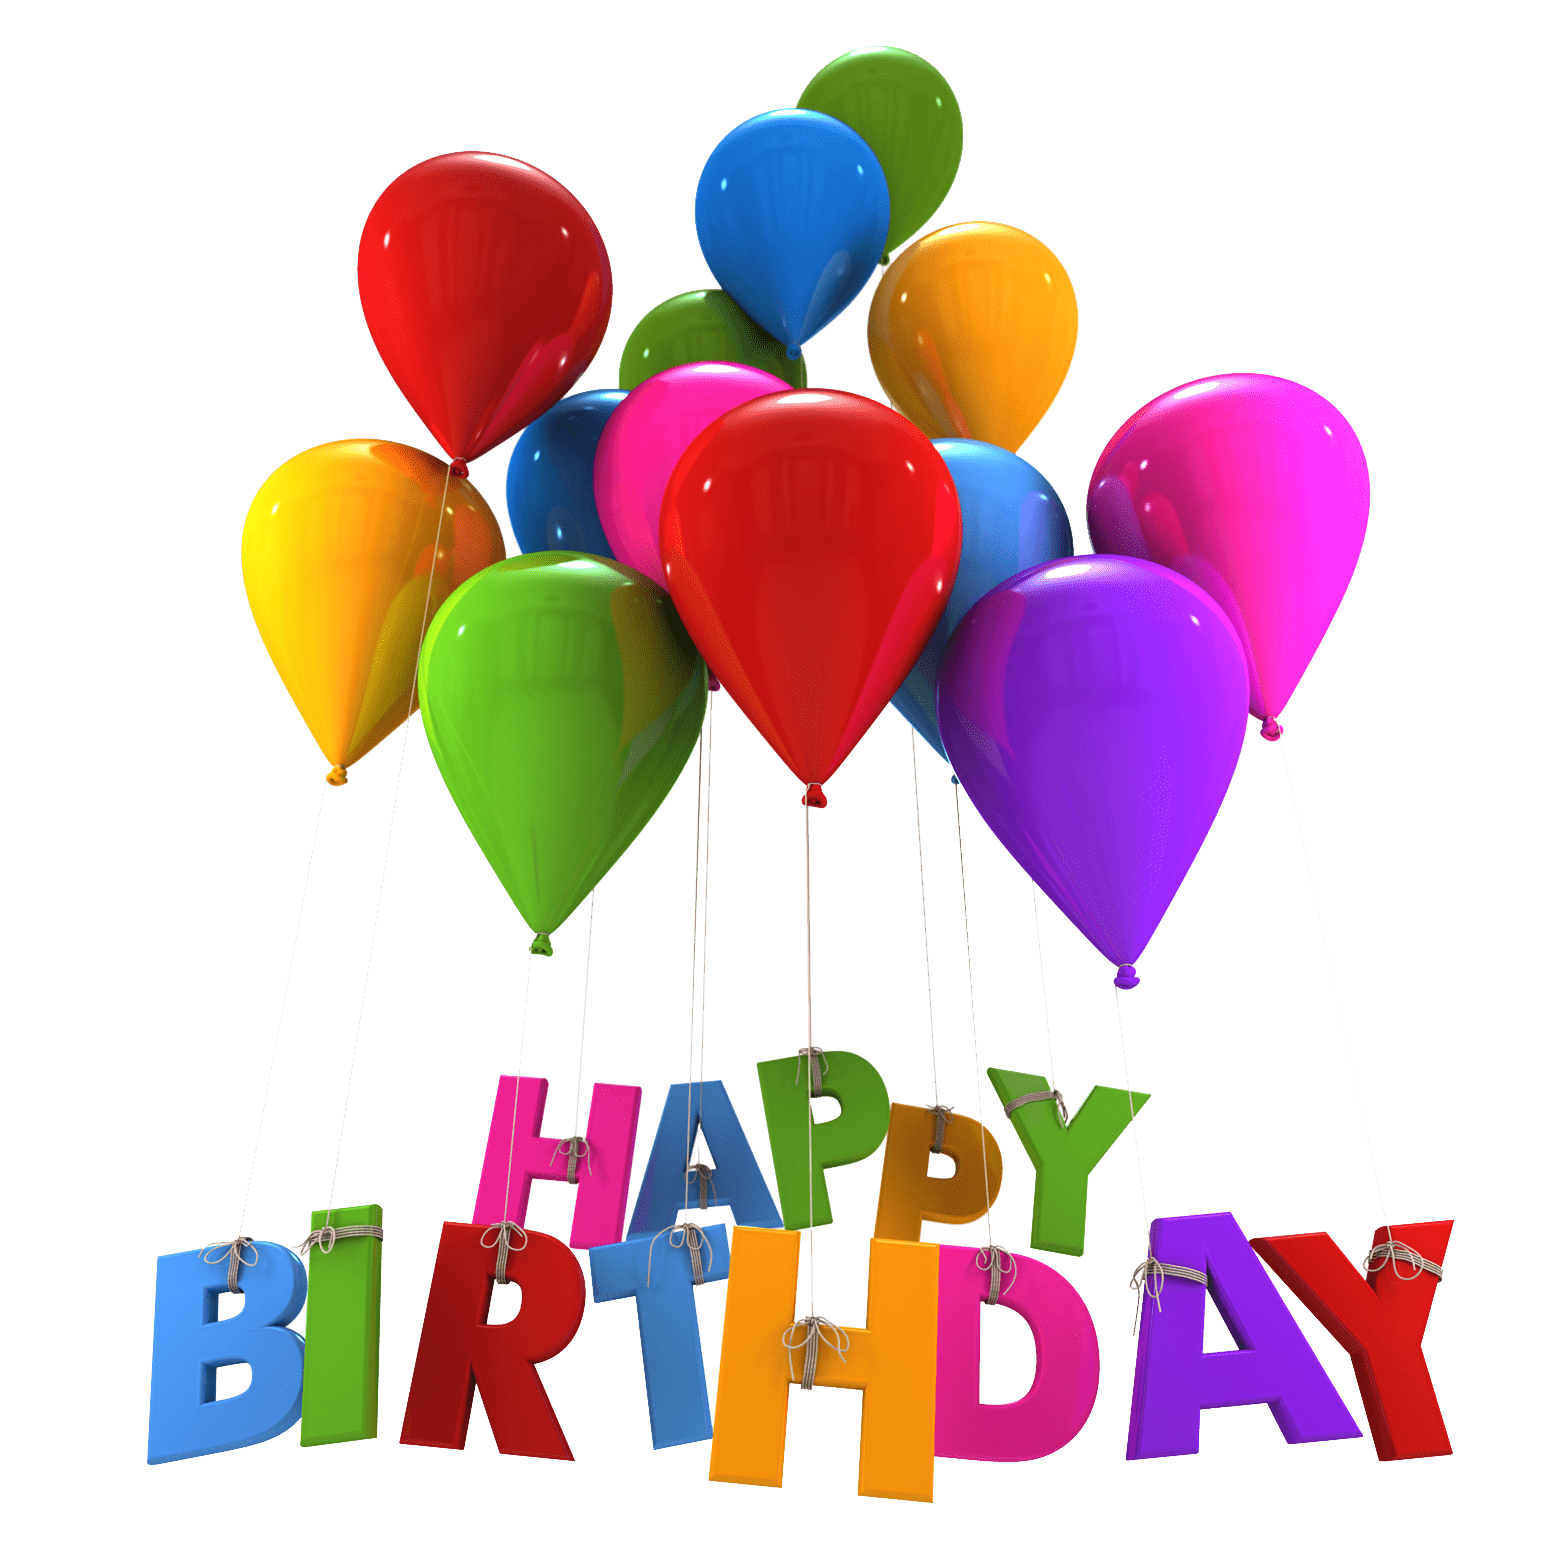 Happy birthday balloon png. Balloons hanging letters transparent